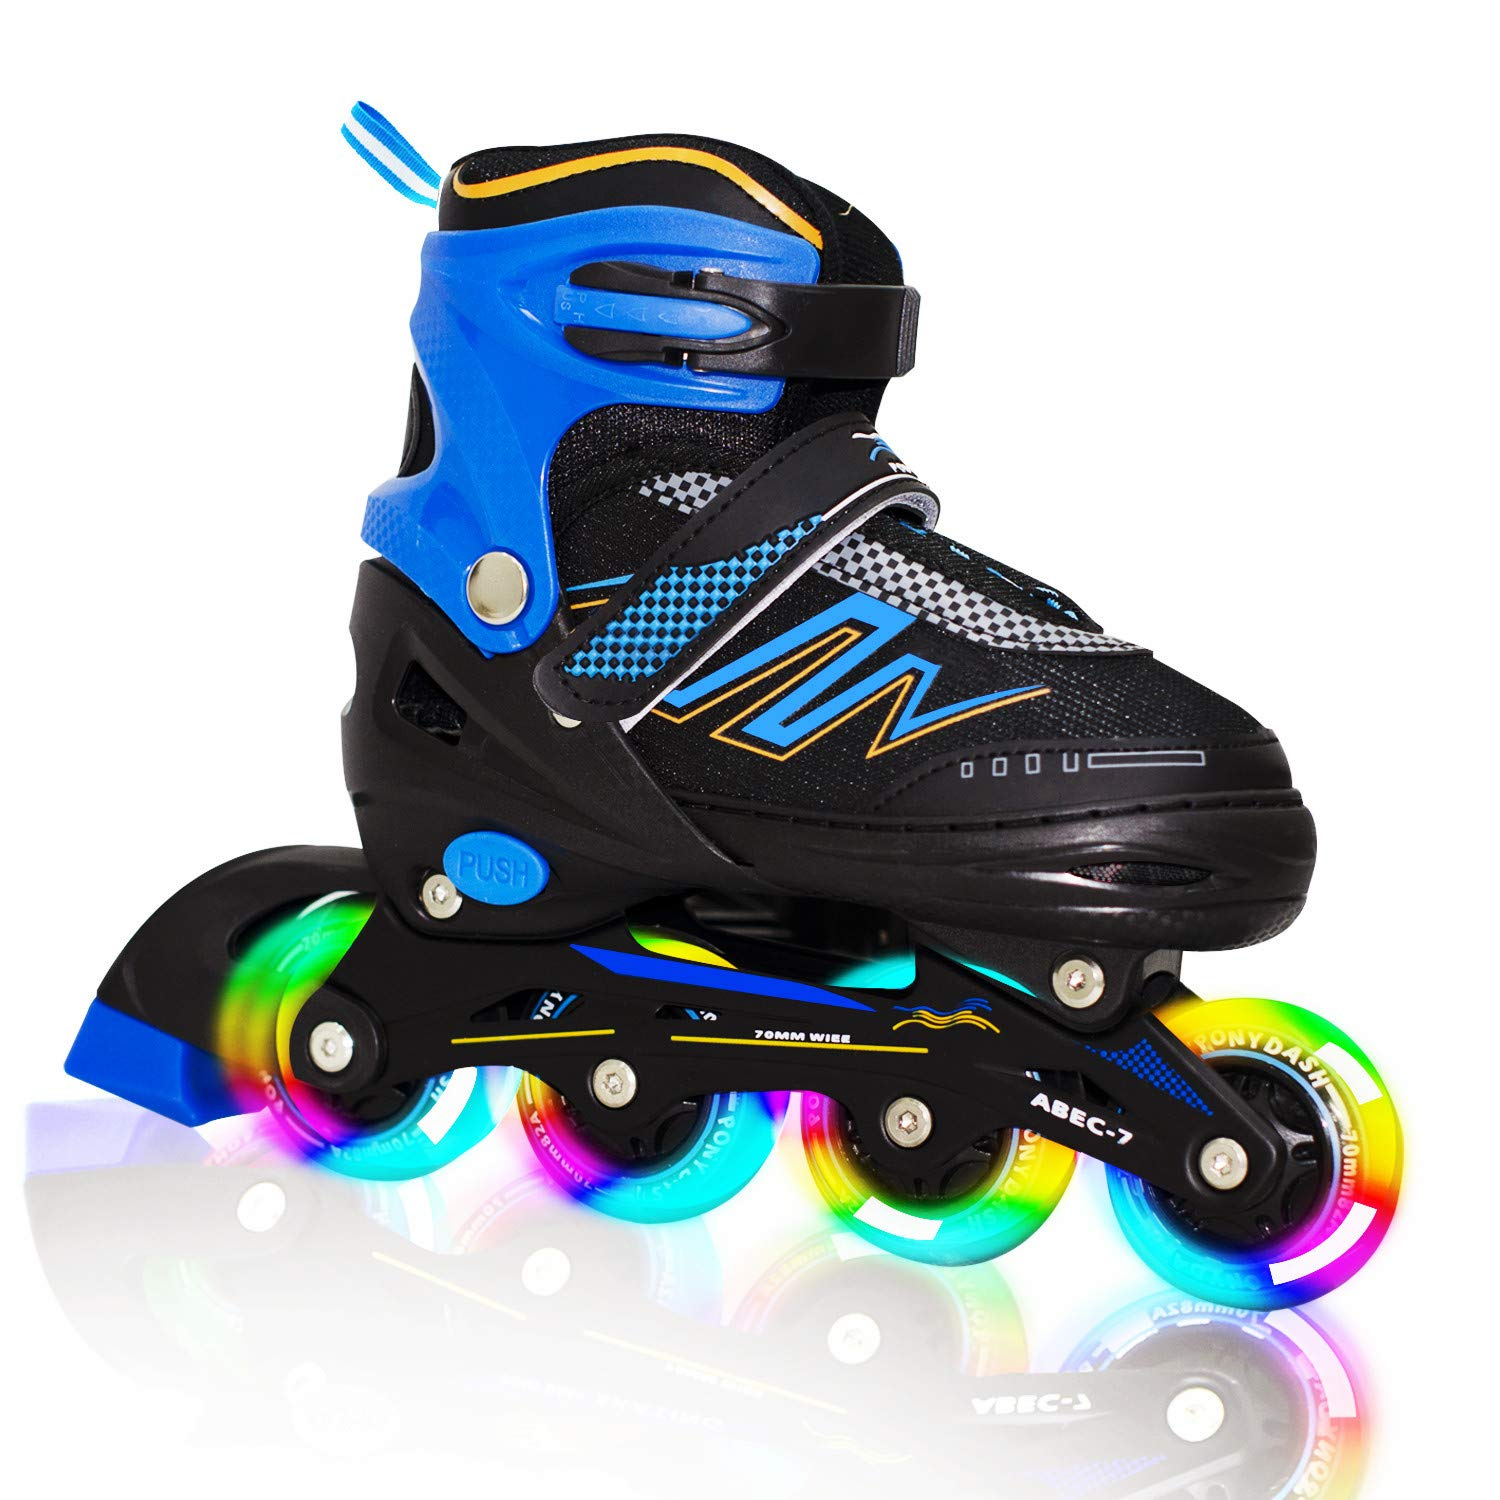 Hiboy Adjustable Inline Skates